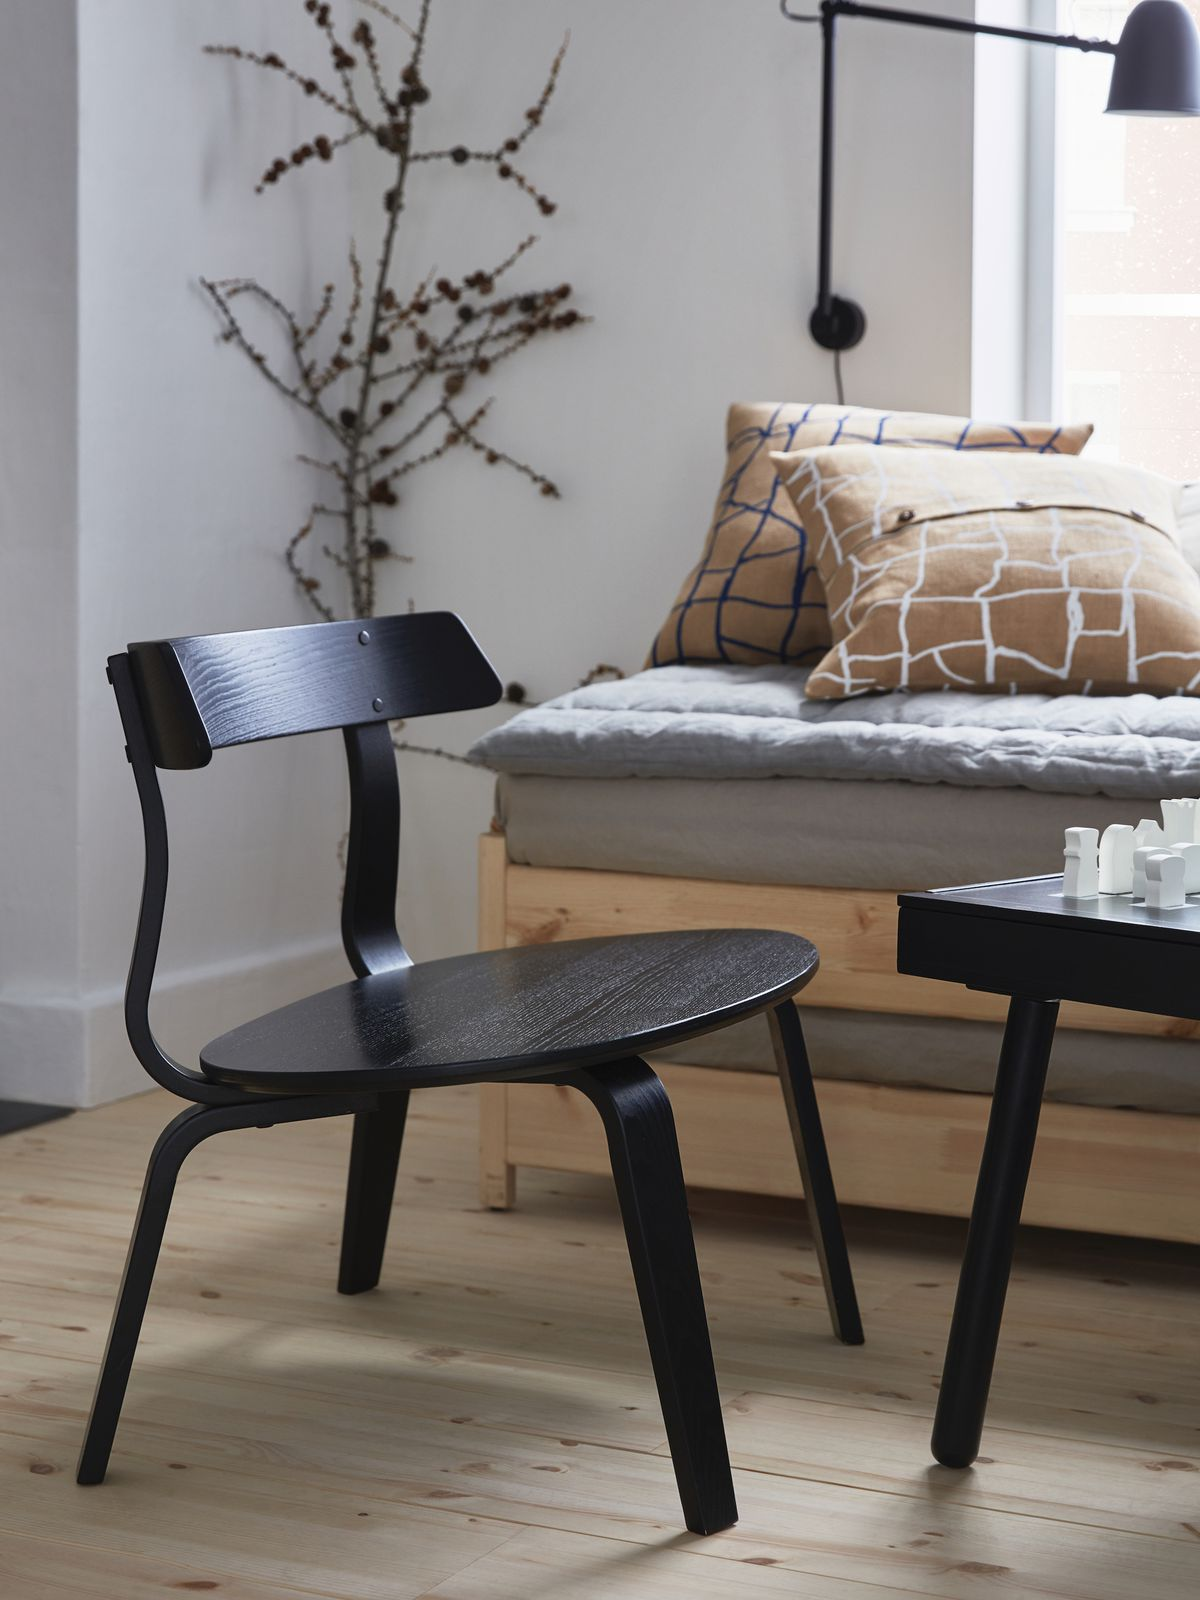 A black armchair with a curved back and round seat sits in front of a bench with brown accent pillows.